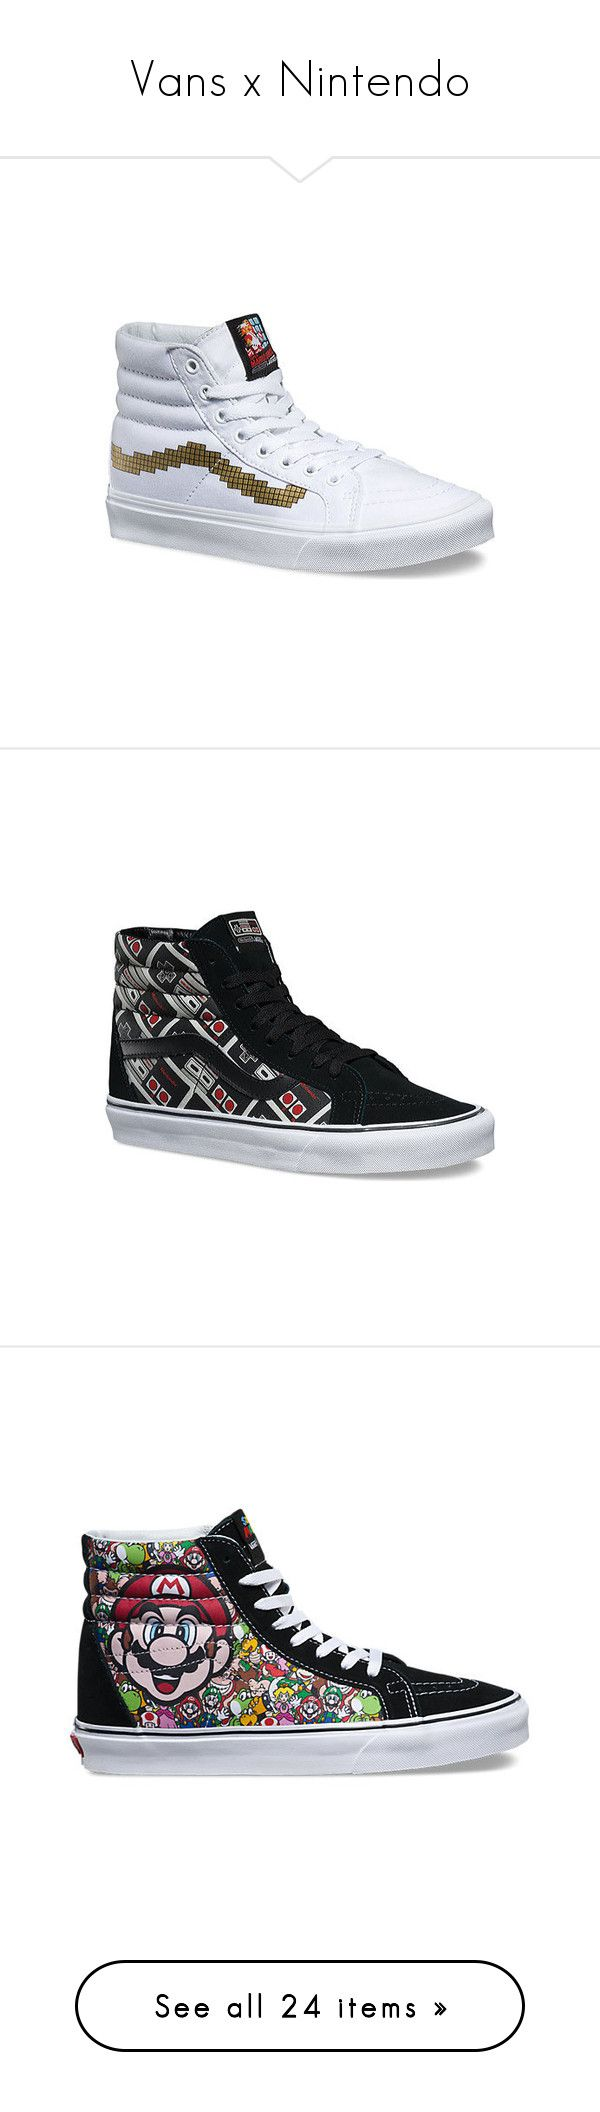 """Vans x Nintendo"" by lulucosby ❤ liked on Polyvore featuring shoes, sneakers, casual footwear, casual shoes, high top canvas sneakers, gold evening shoes, gold high-top sneakers, black evening shoes, black high-top sneakers and black white sneakers"